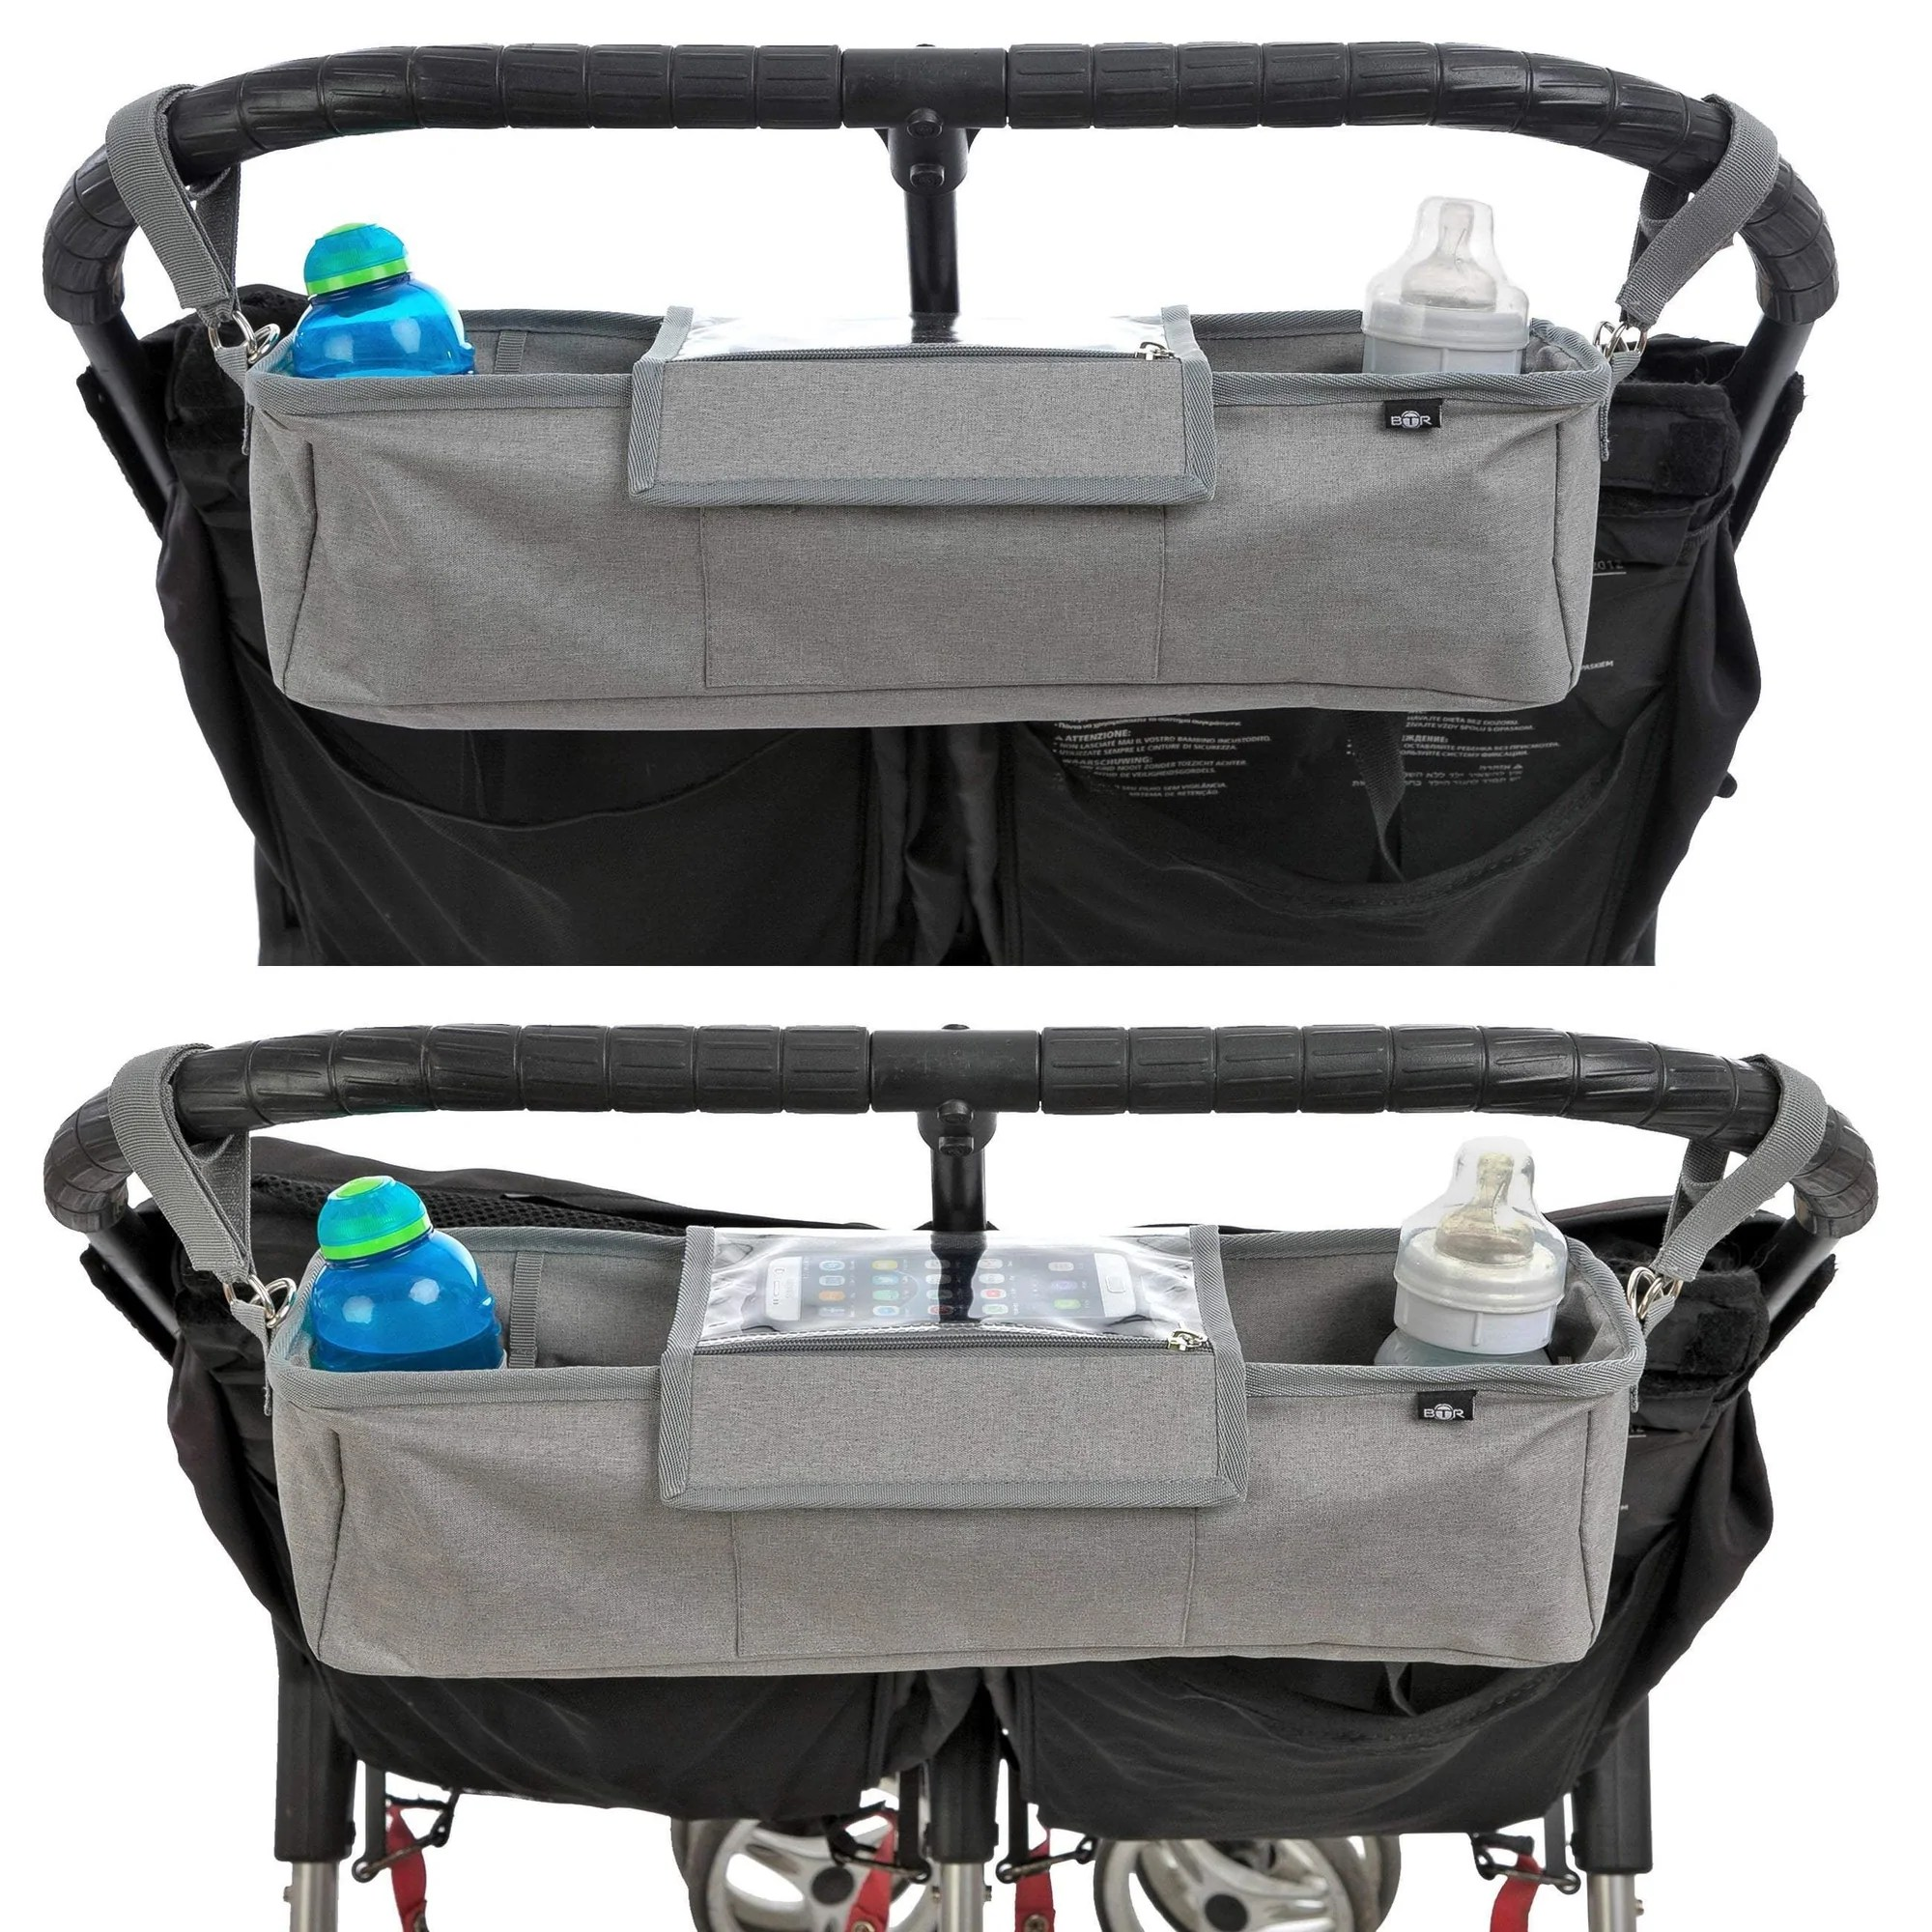 Double Pram Australia Reviews Btr Pram Buggy Organiser For Twin Double Buggies Plus 2 X